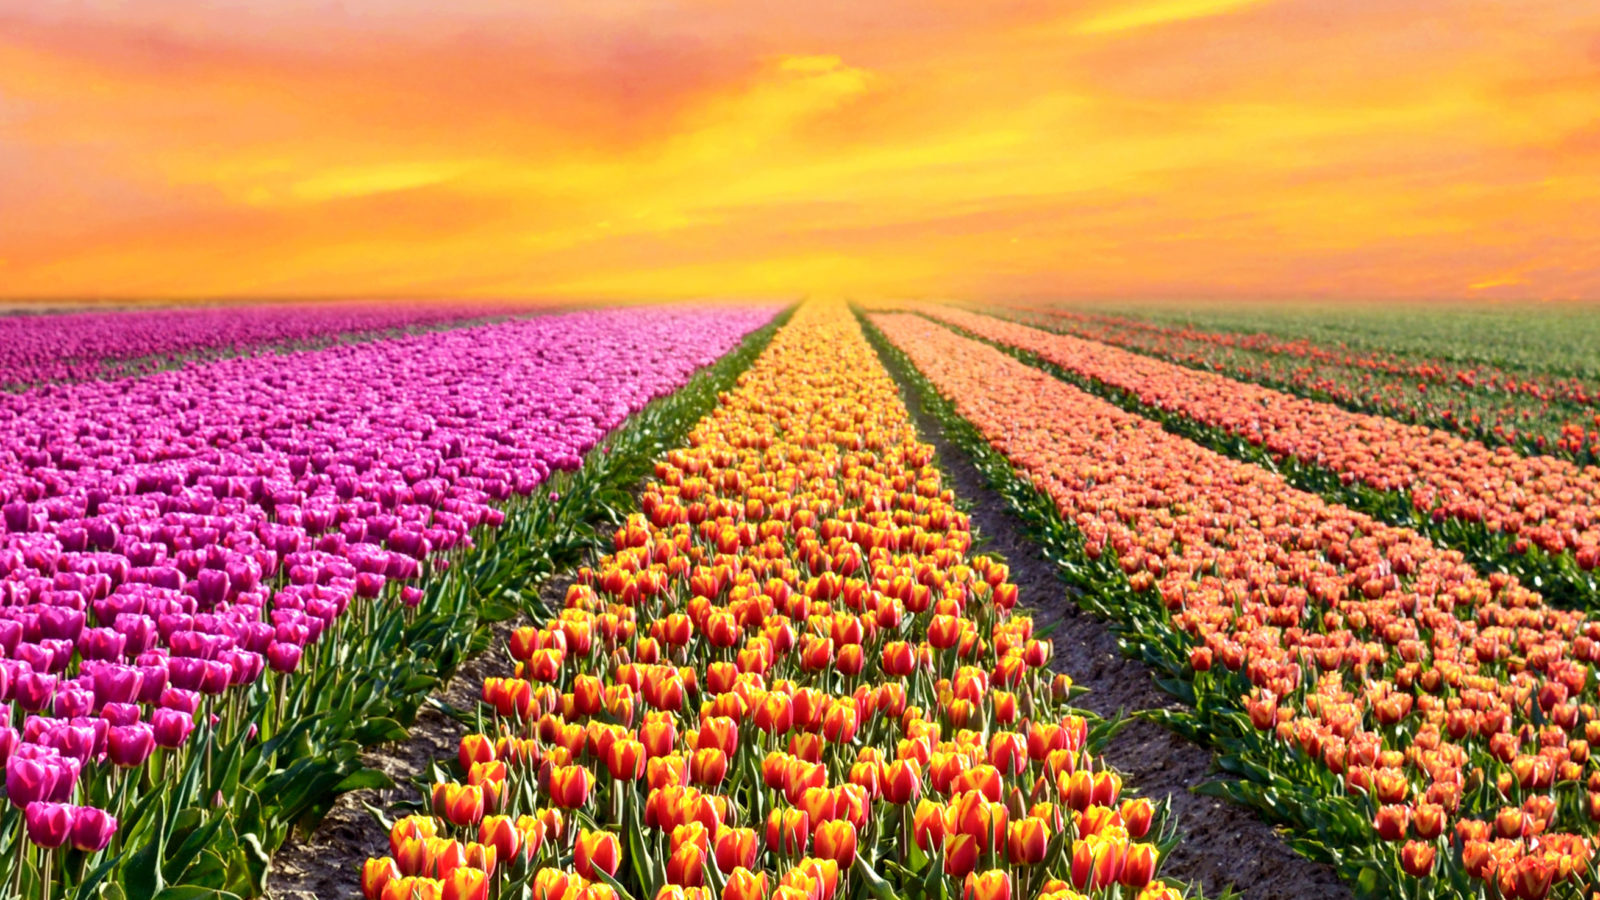 Colorful field of tulips in the spring